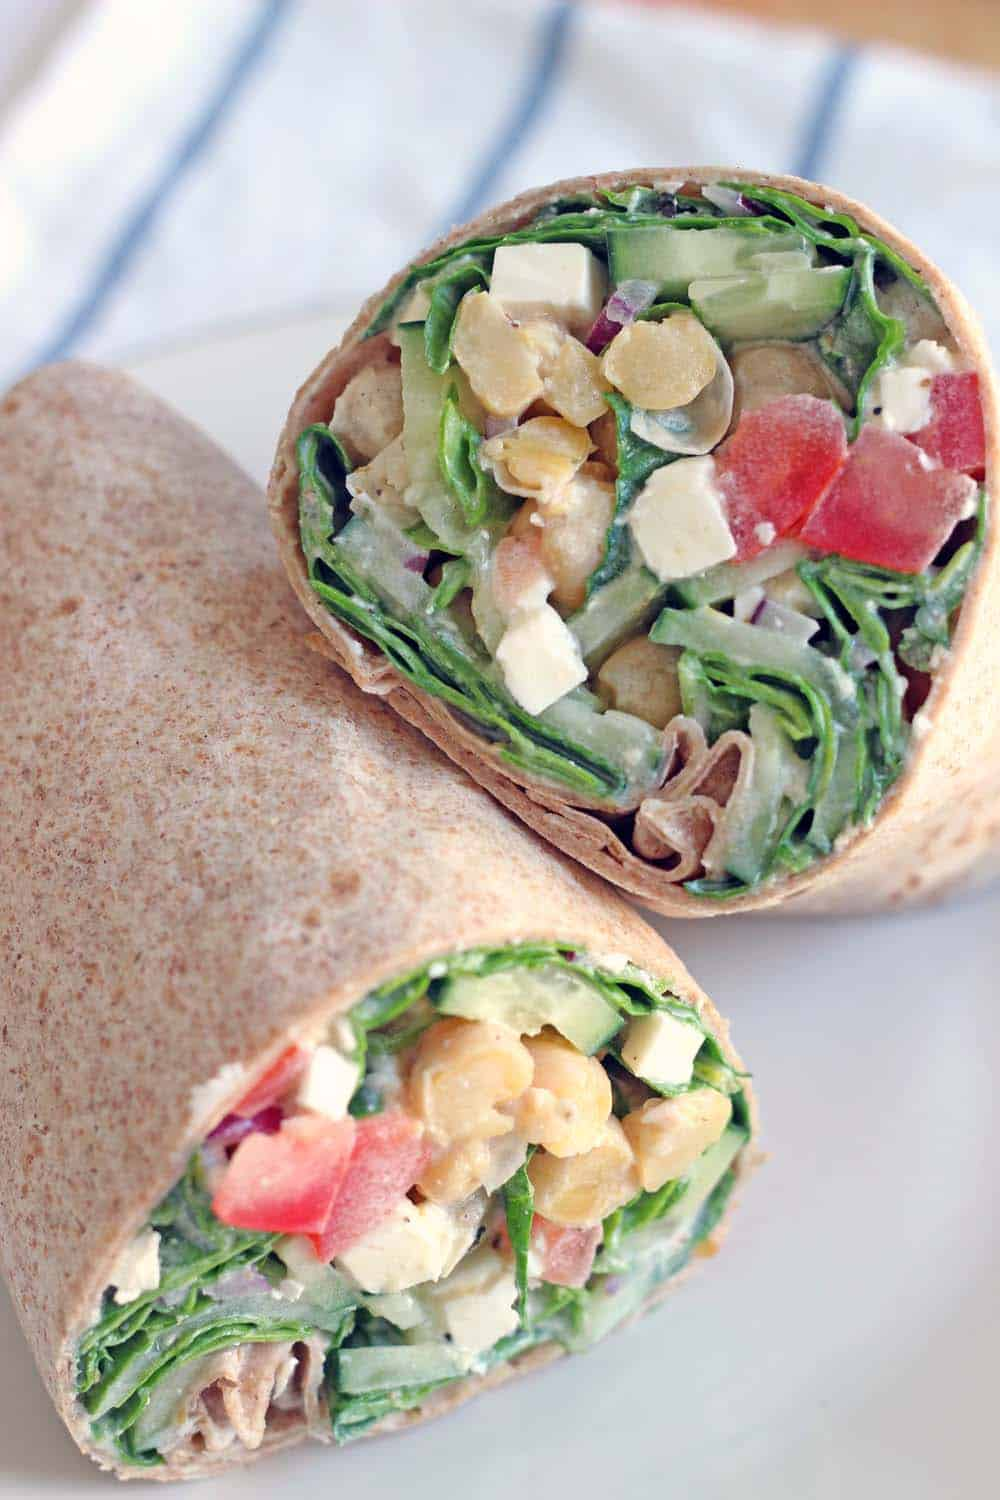 Close-up of the inside of two halves of Mediterranean Chickpea and Feta Salad Wrap with Creamy Greek Dressing.